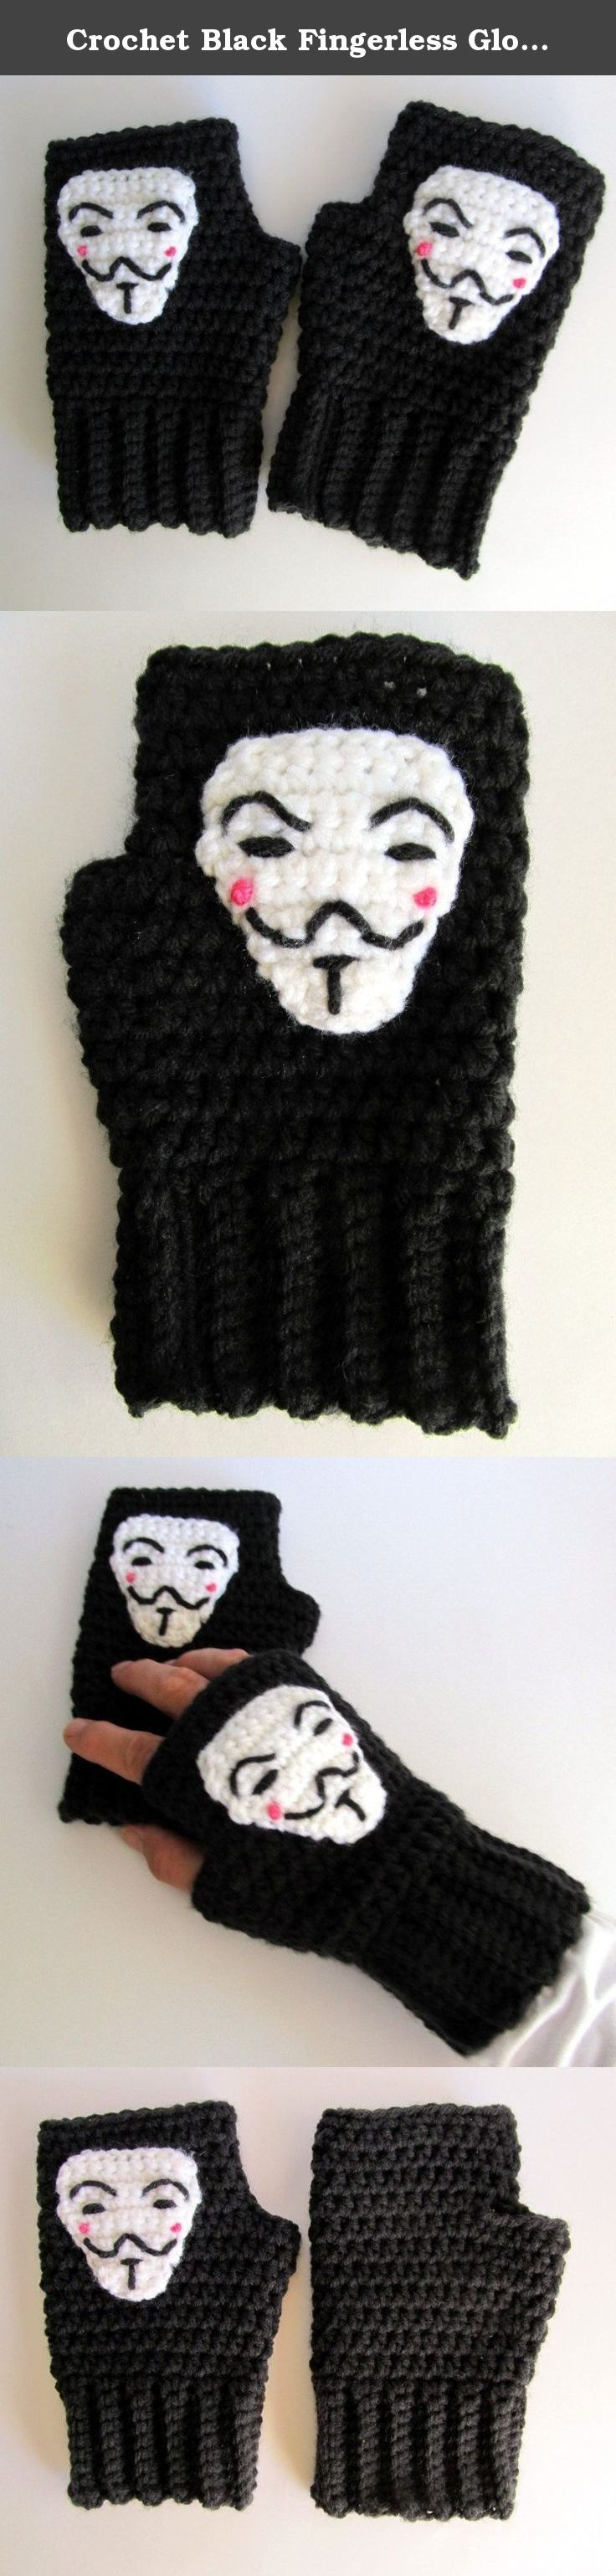 Crochet Black Fingerless Gloves, V for Vendetta Fingerless Mitts, Acrylic Armwarmers, Mittens, Anonymous Texting Gloves, Guy Fawkes Wrist Warmers. Remember, remember the 5th of November Inspired by V for Vendetta these fingerless gloves are crocheted using soft and warm 100% Acrylic Yarn with a hand stitched and securely sewn V for Vendetta inspired applique. The fingerless glove and applique are both my own original design. Gloves are one size fits most - a medium sized glove that will…